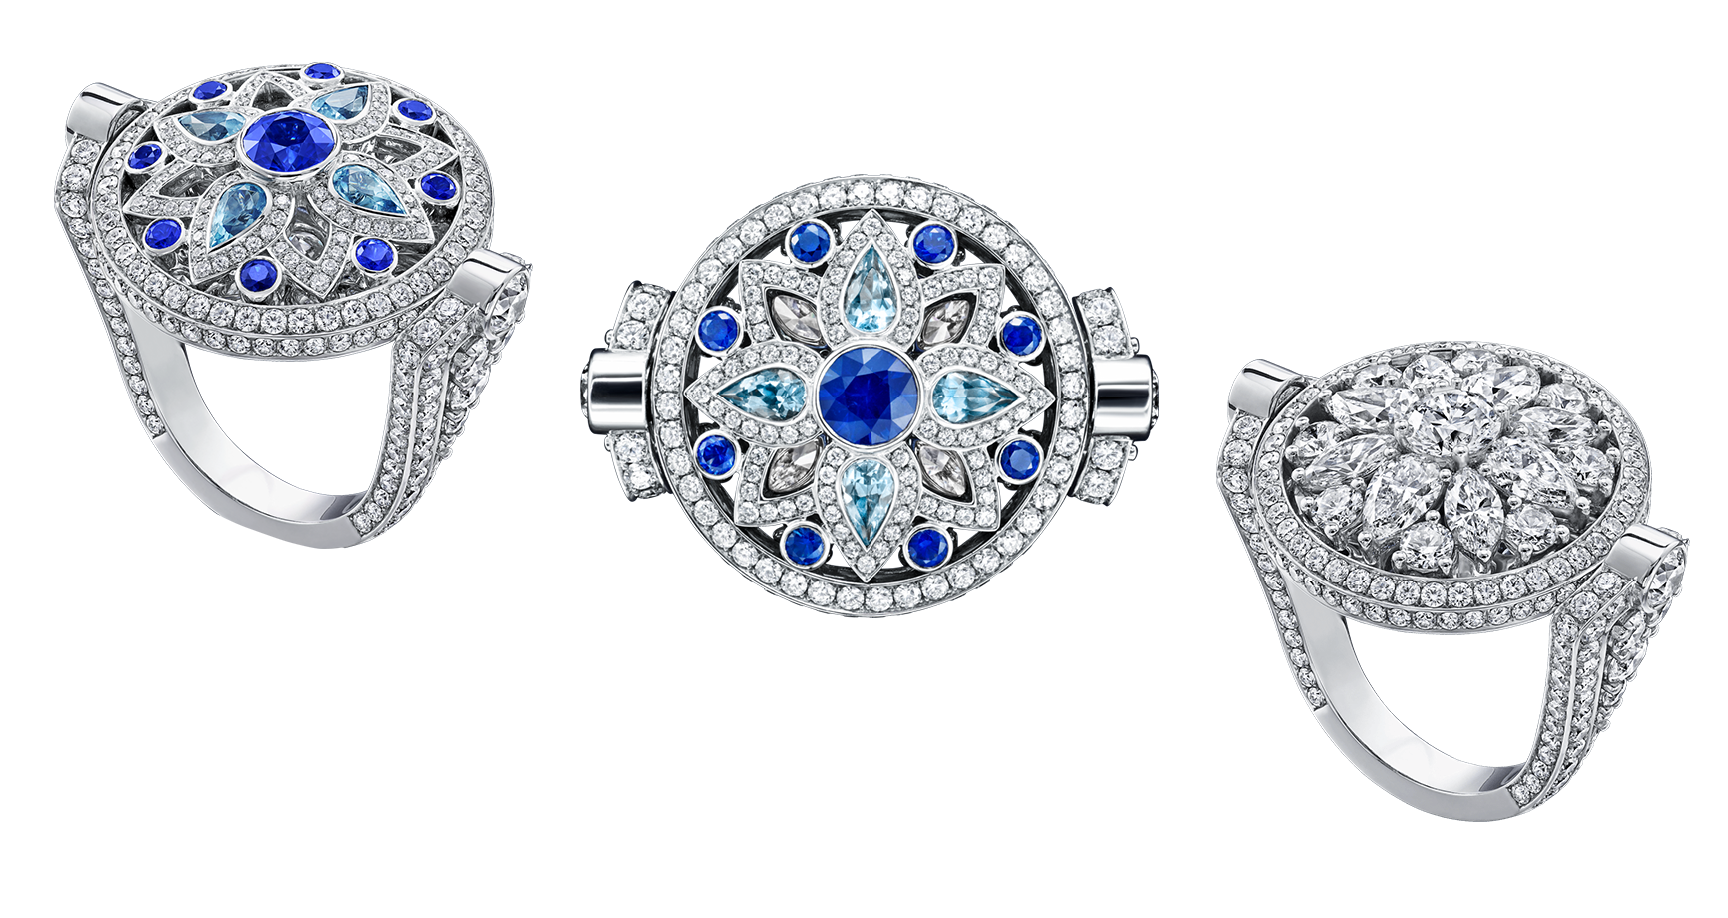 Secret Wonder by Harry Winston, Reversible Diamond, Sapphire and Aquamarine Ring